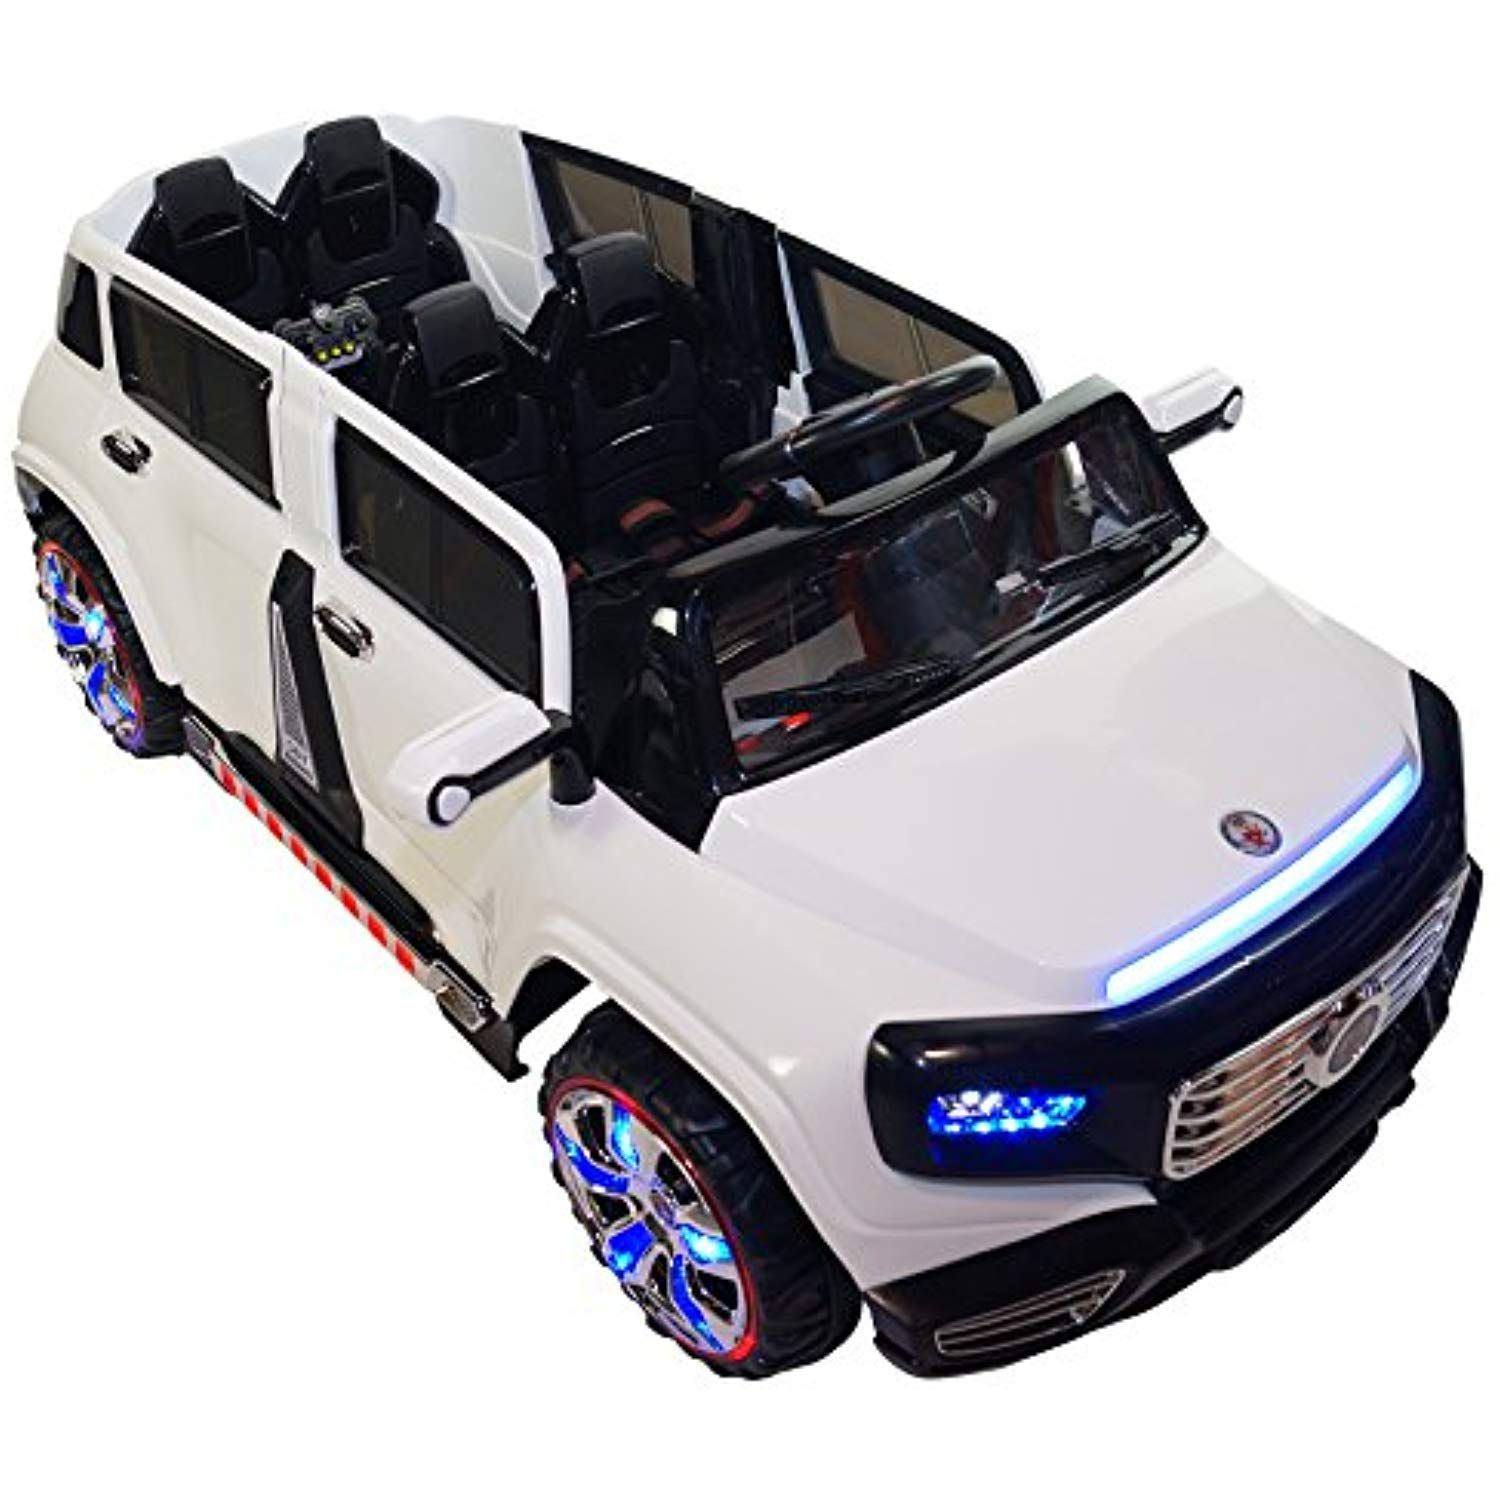 Two Seater 4 Door Premium Ride On Electric Toy Car For Kids 12v Battery Powered Led Lights Mp3 Toy Cars For Kids Kids Ride On Toys Battery Operated Toys